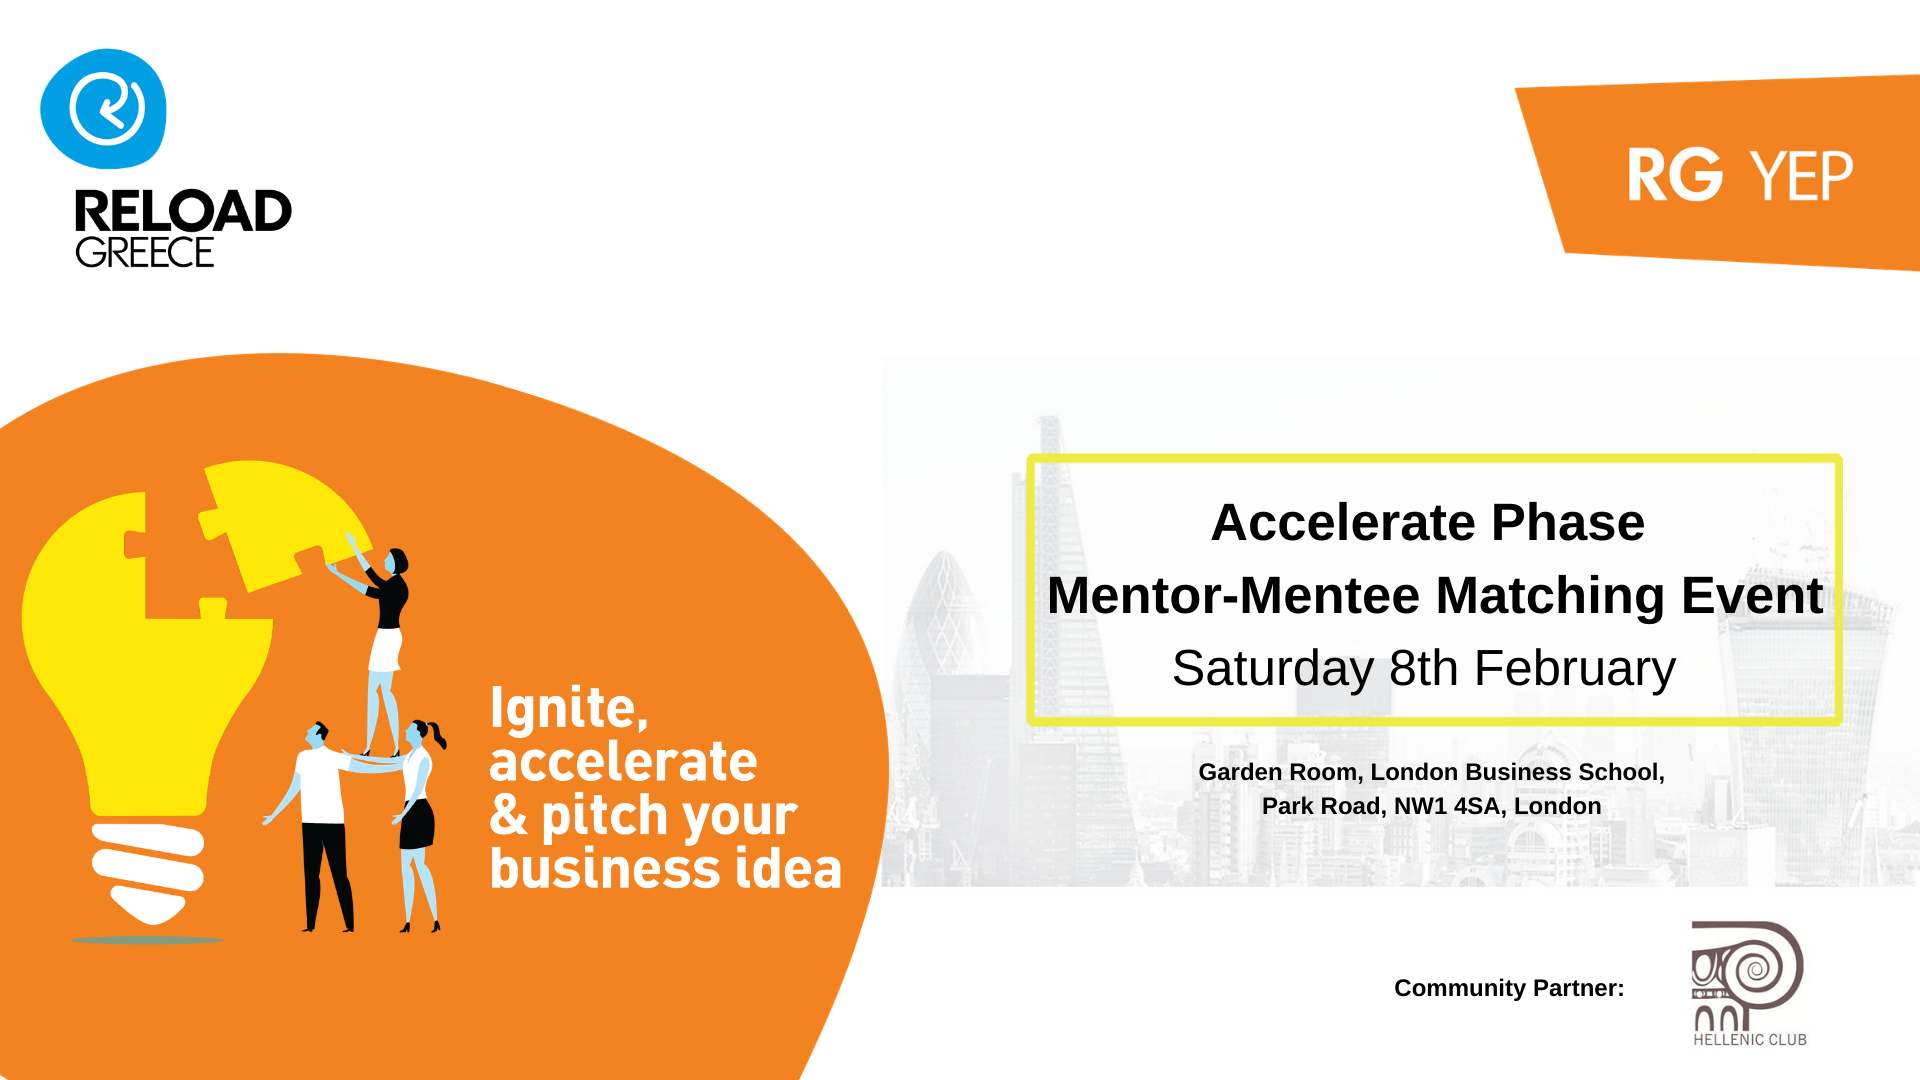 RG YEP Accelerate Phase 2019-2020: Mentor- Mentee Matching Event!